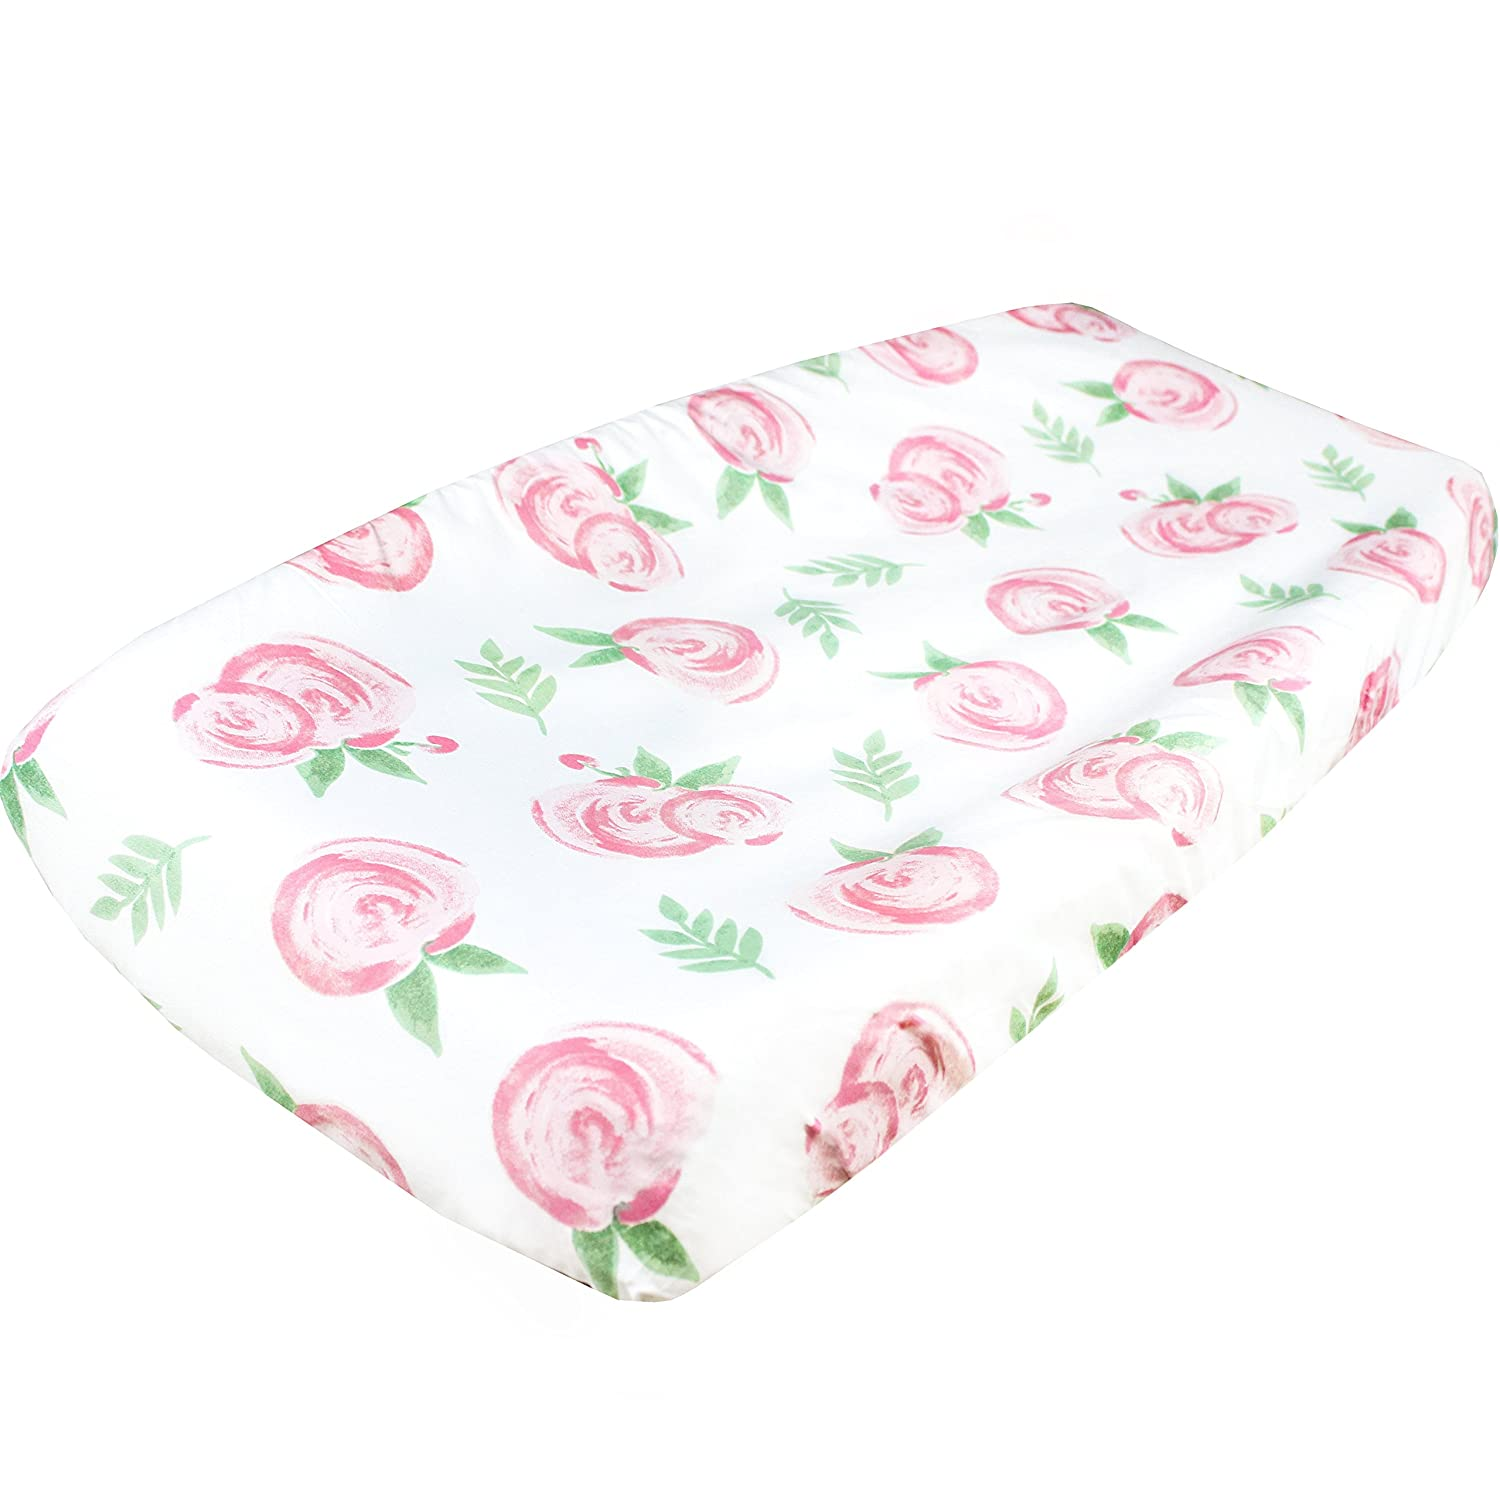 Premium Cotton Diaper Changing Pad CoverGrace Floral by Copper Pearl